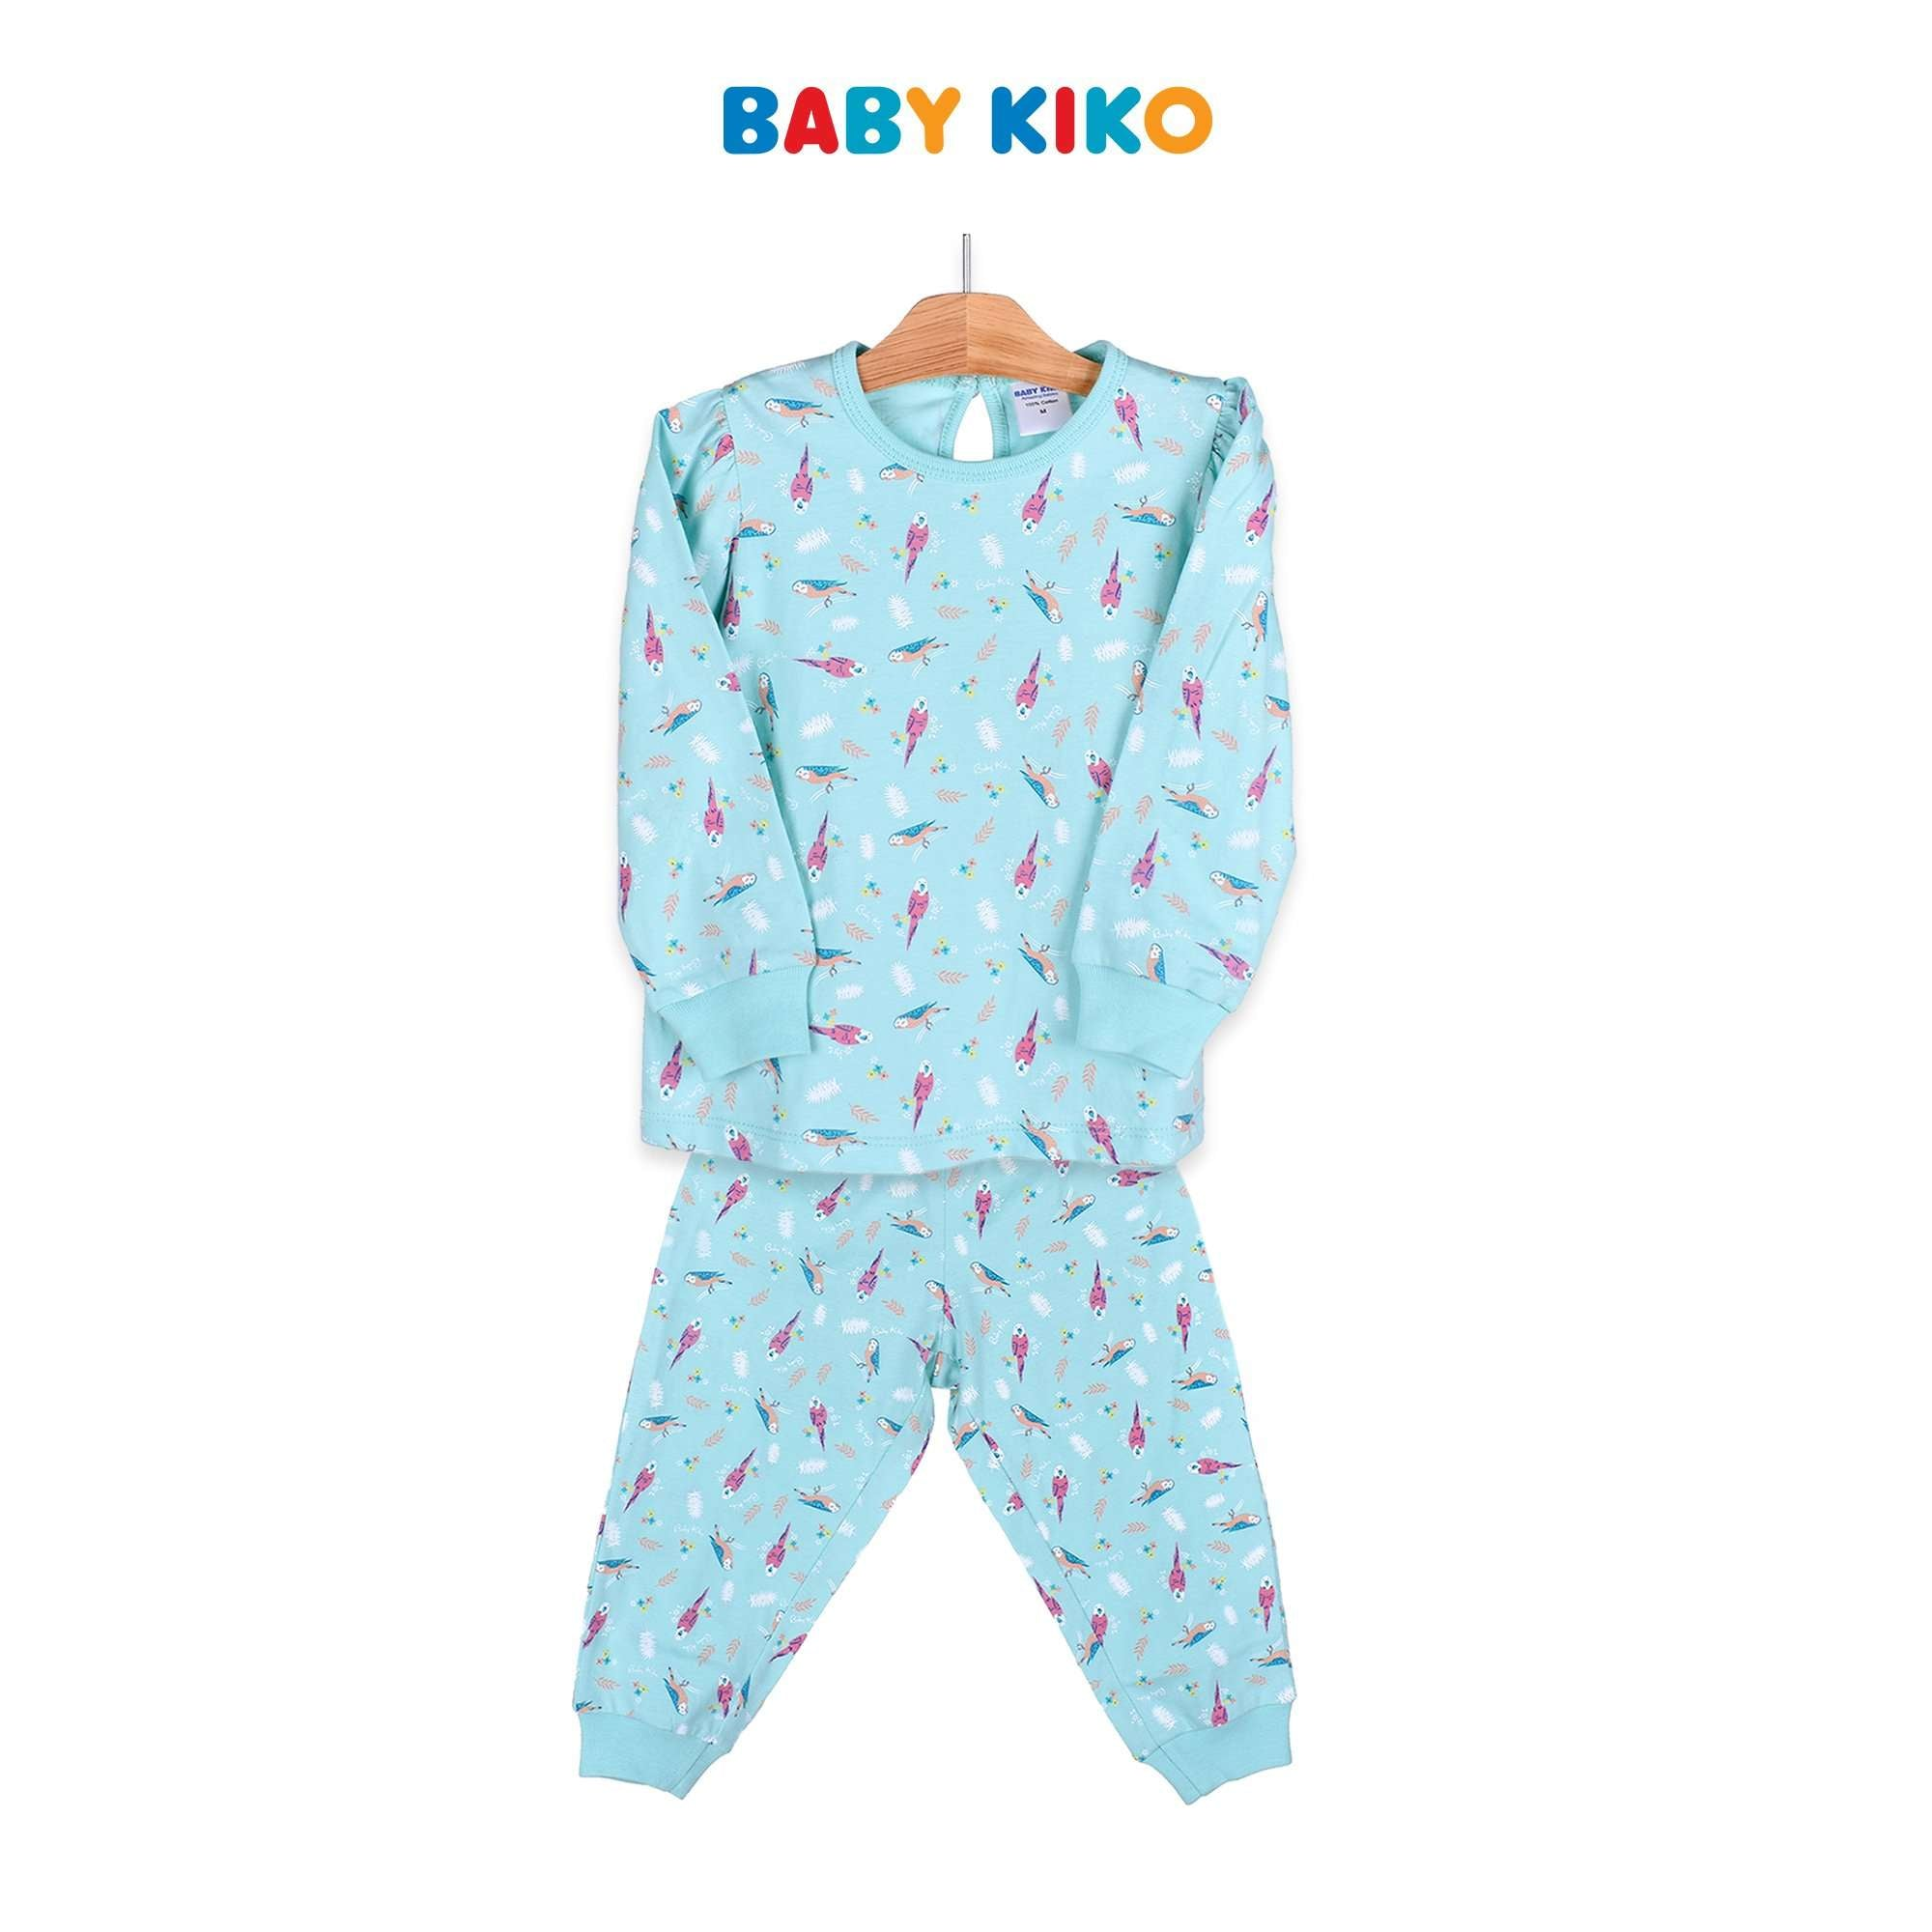 Baby KIKO Toddler Girl Long Sleeve Long Pant Suit - Green 325145-431 : Buy Baby KIKO online at CMG.MY